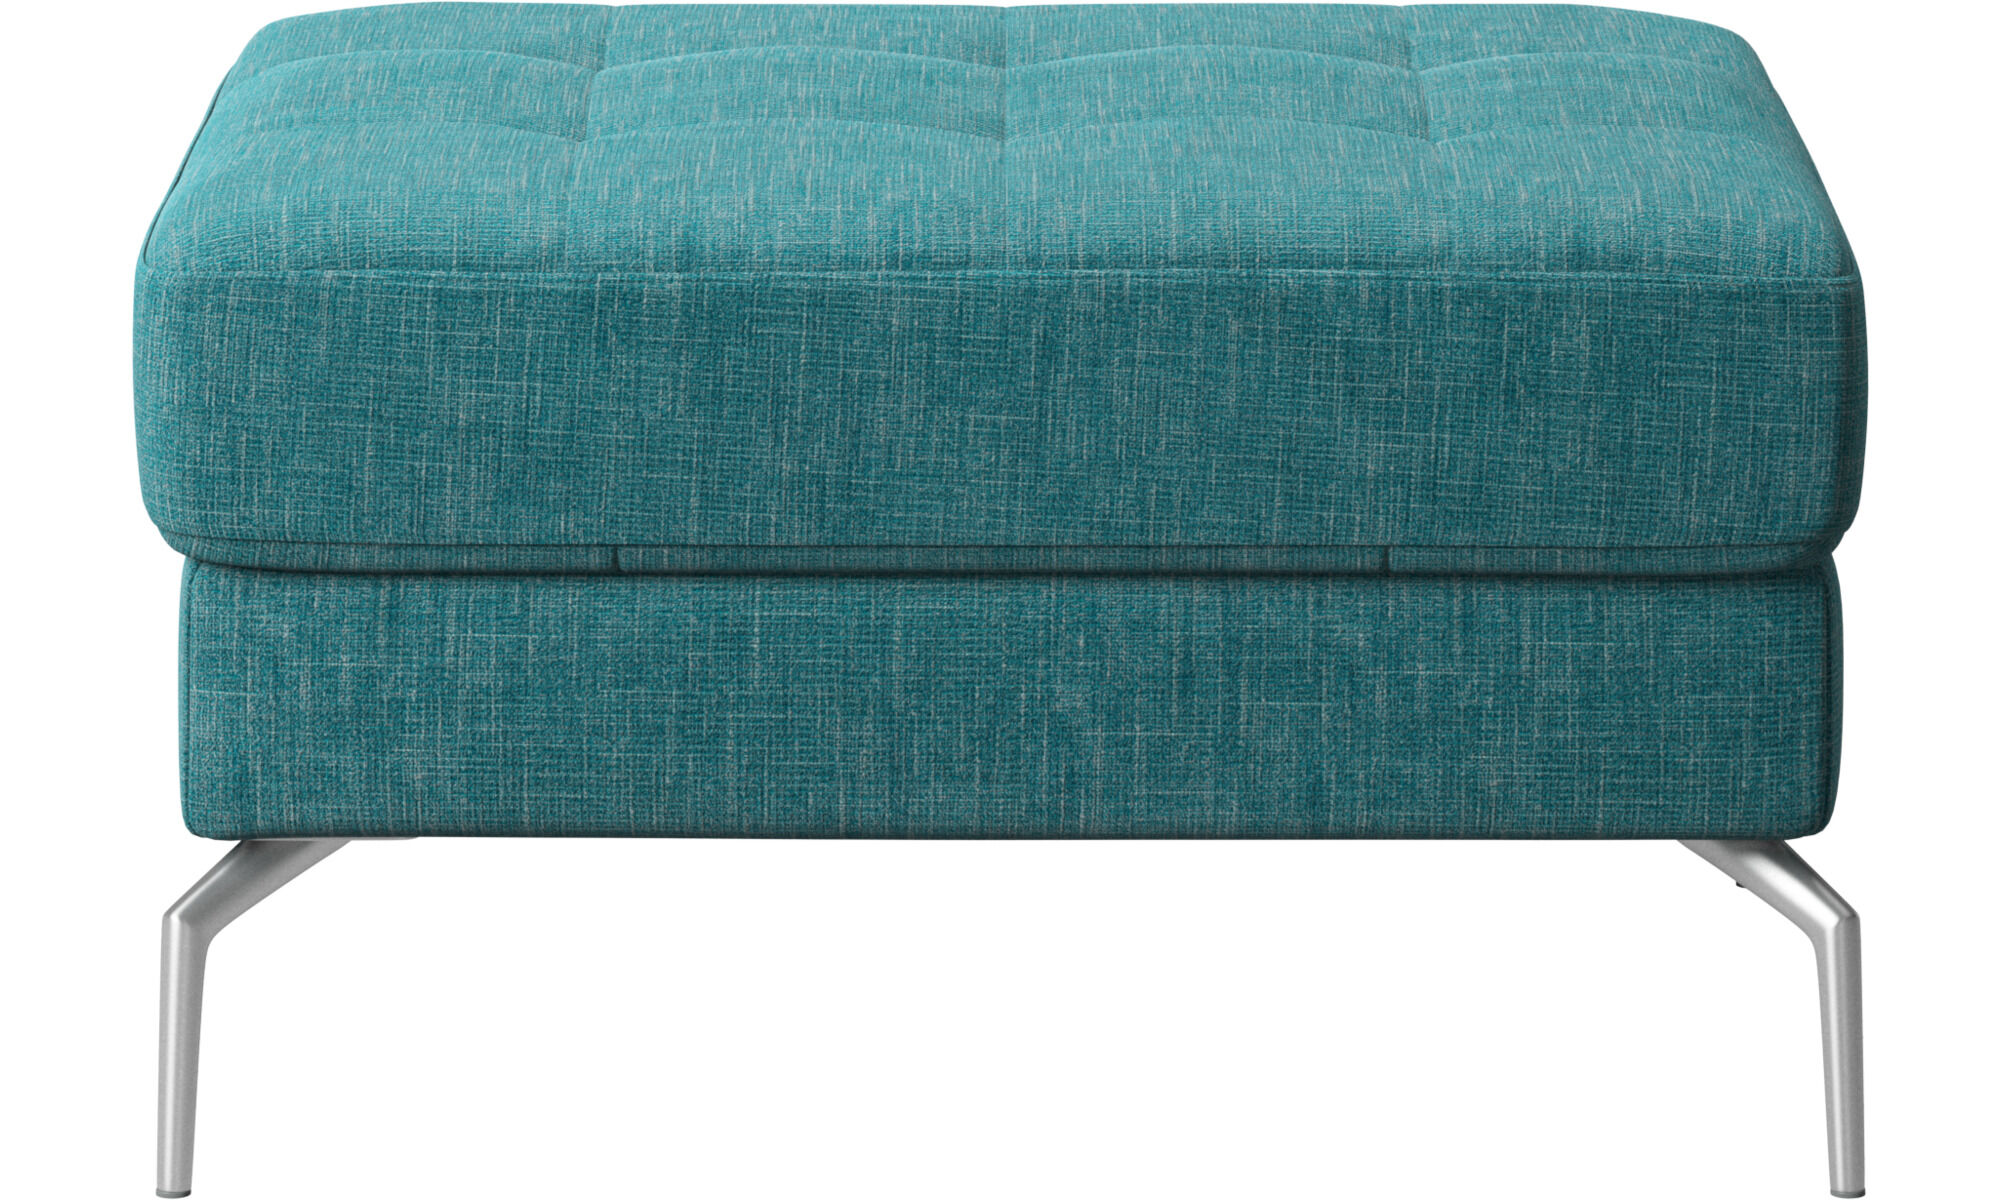 Footstools   Osaka Footstool, Tufted Seat   Blue   Fabric